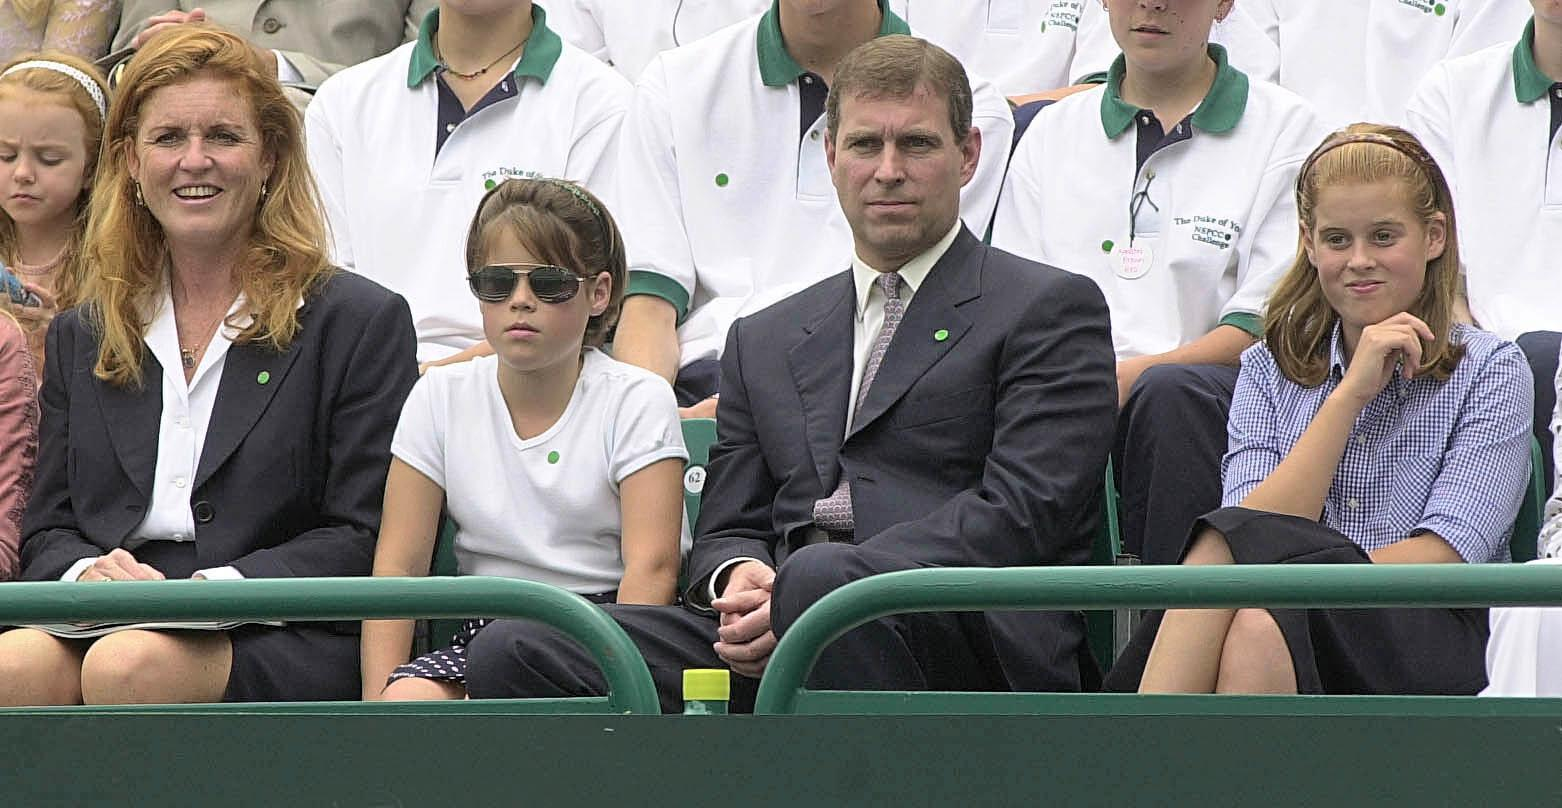 The Duke and Duchess of York sit with their children Beatrice (Left) and Eugenie (Right) while they await the start of the tennis in the grounds of Buckingham Palace. The Duke of York organised the charity tennis event, to raise money for the NSPCC.